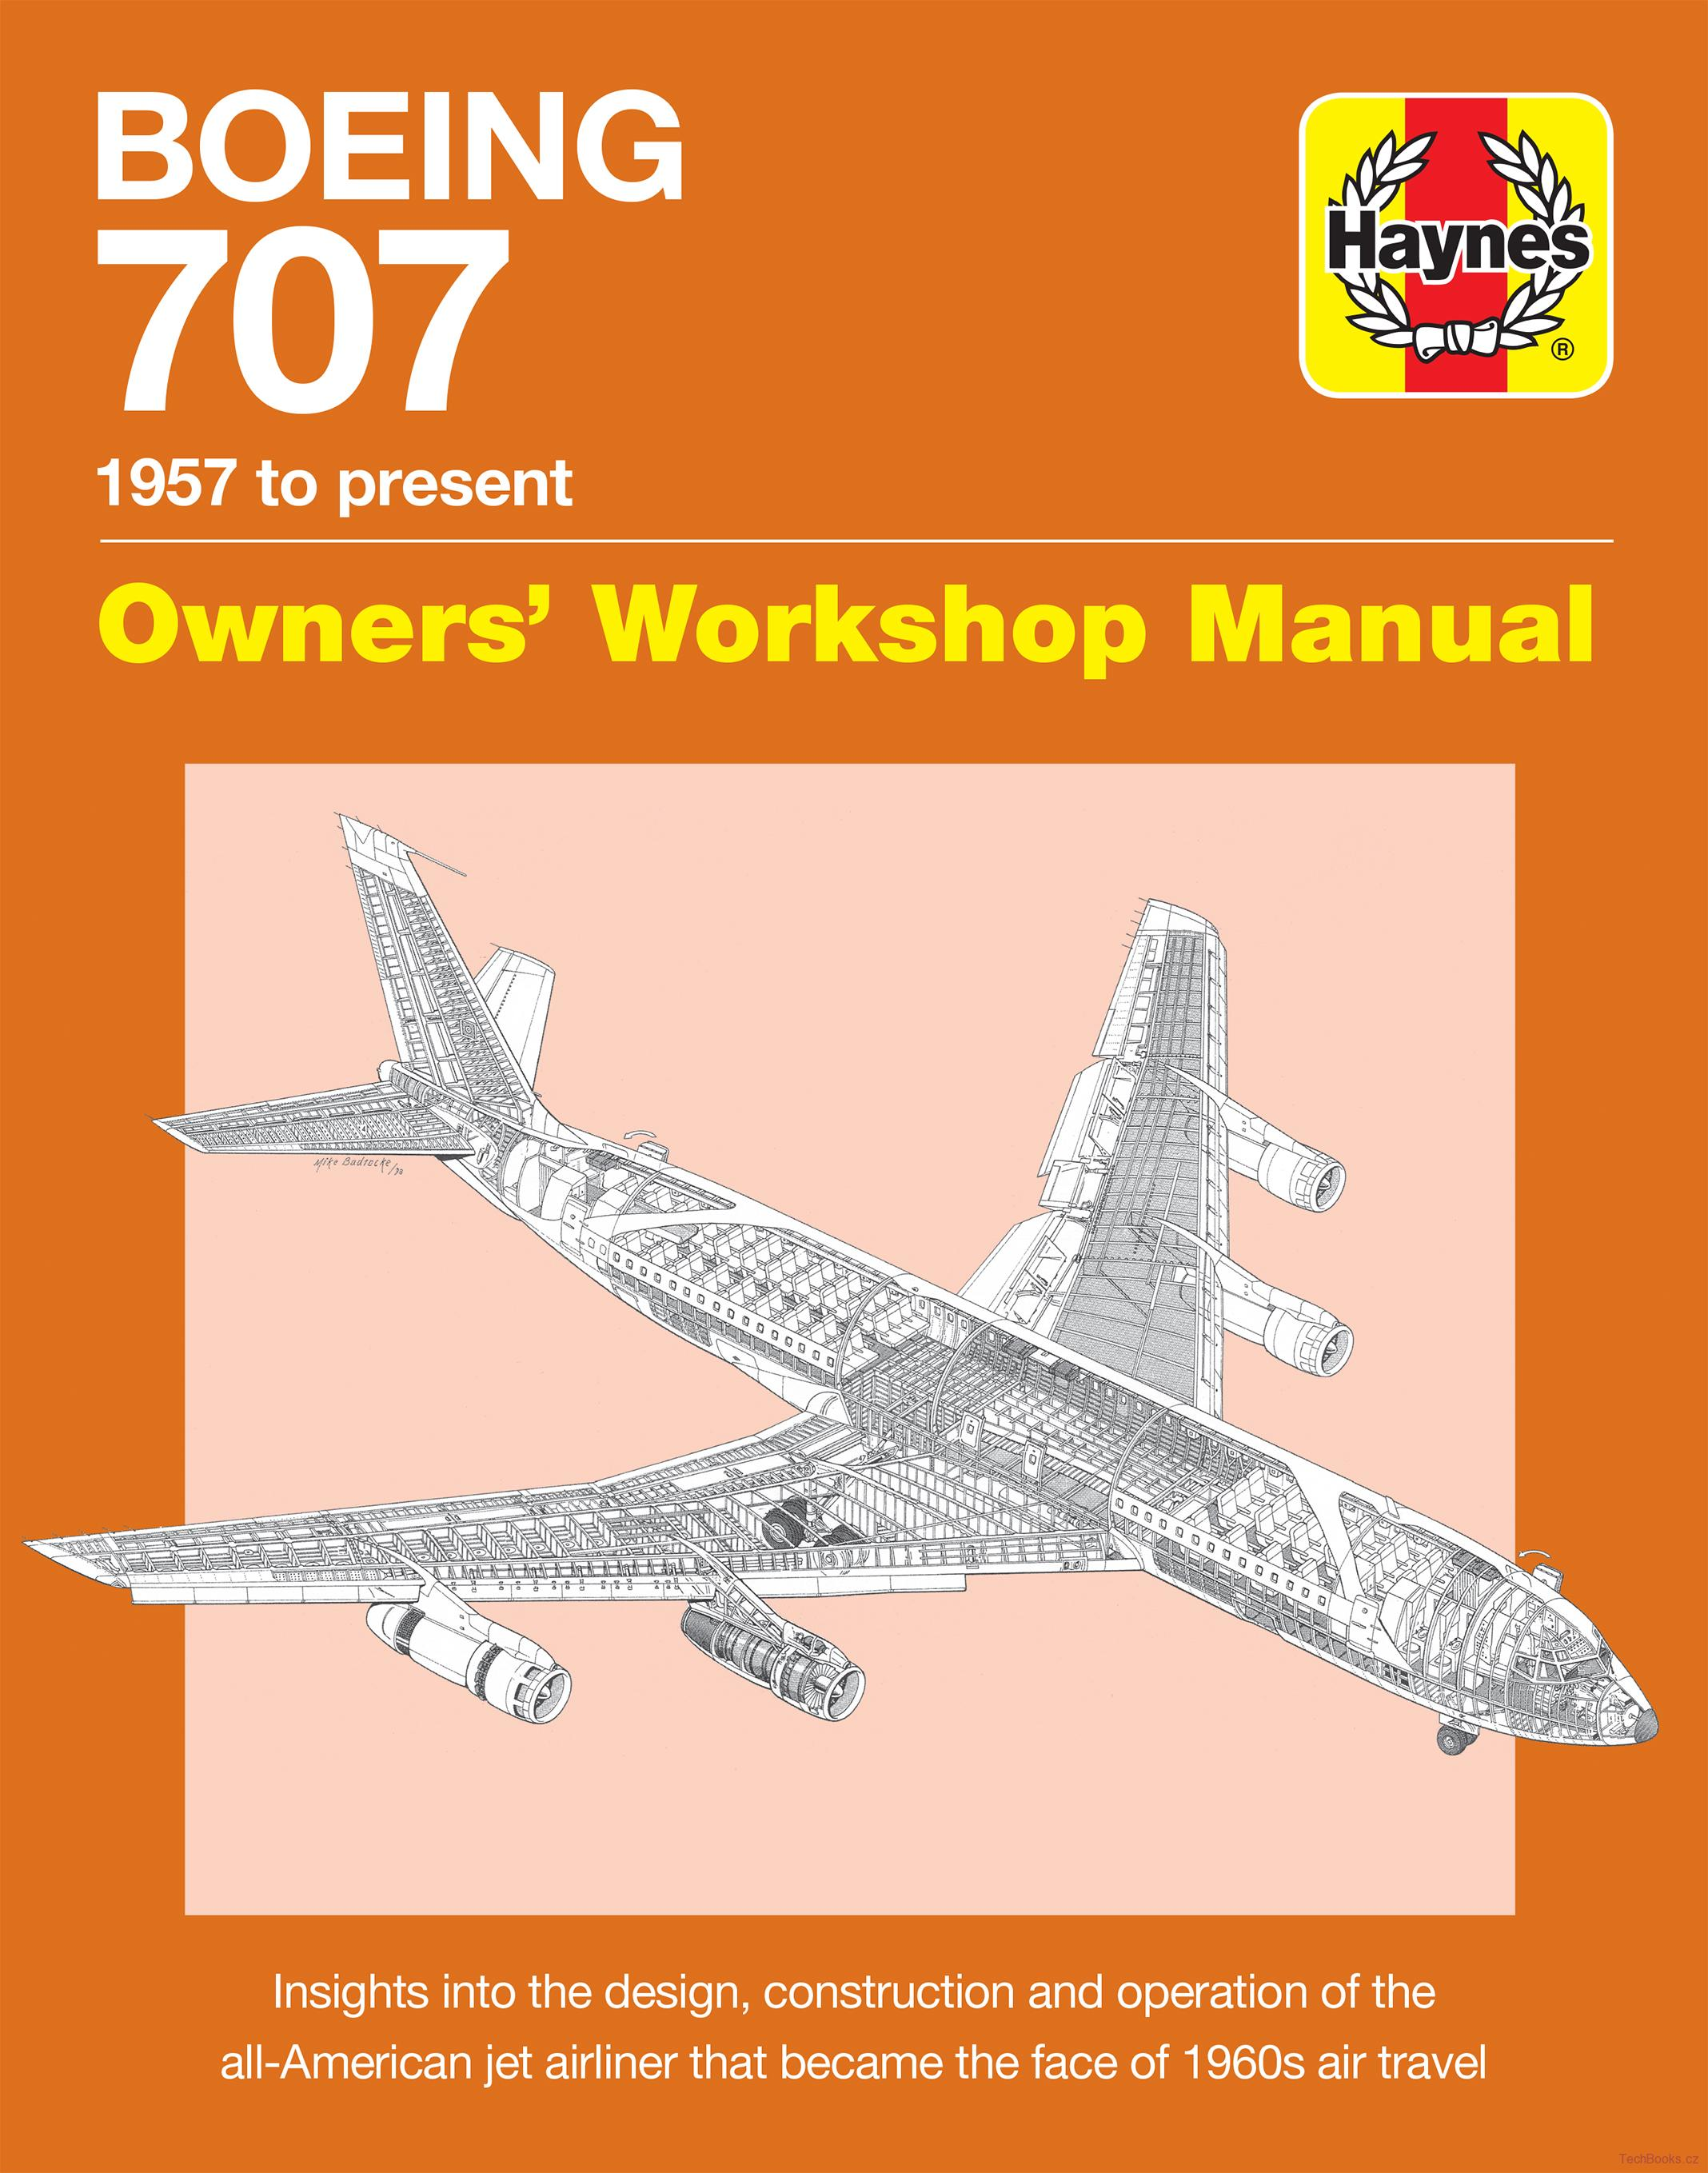 Boeing 707 Manual (1957 to present)